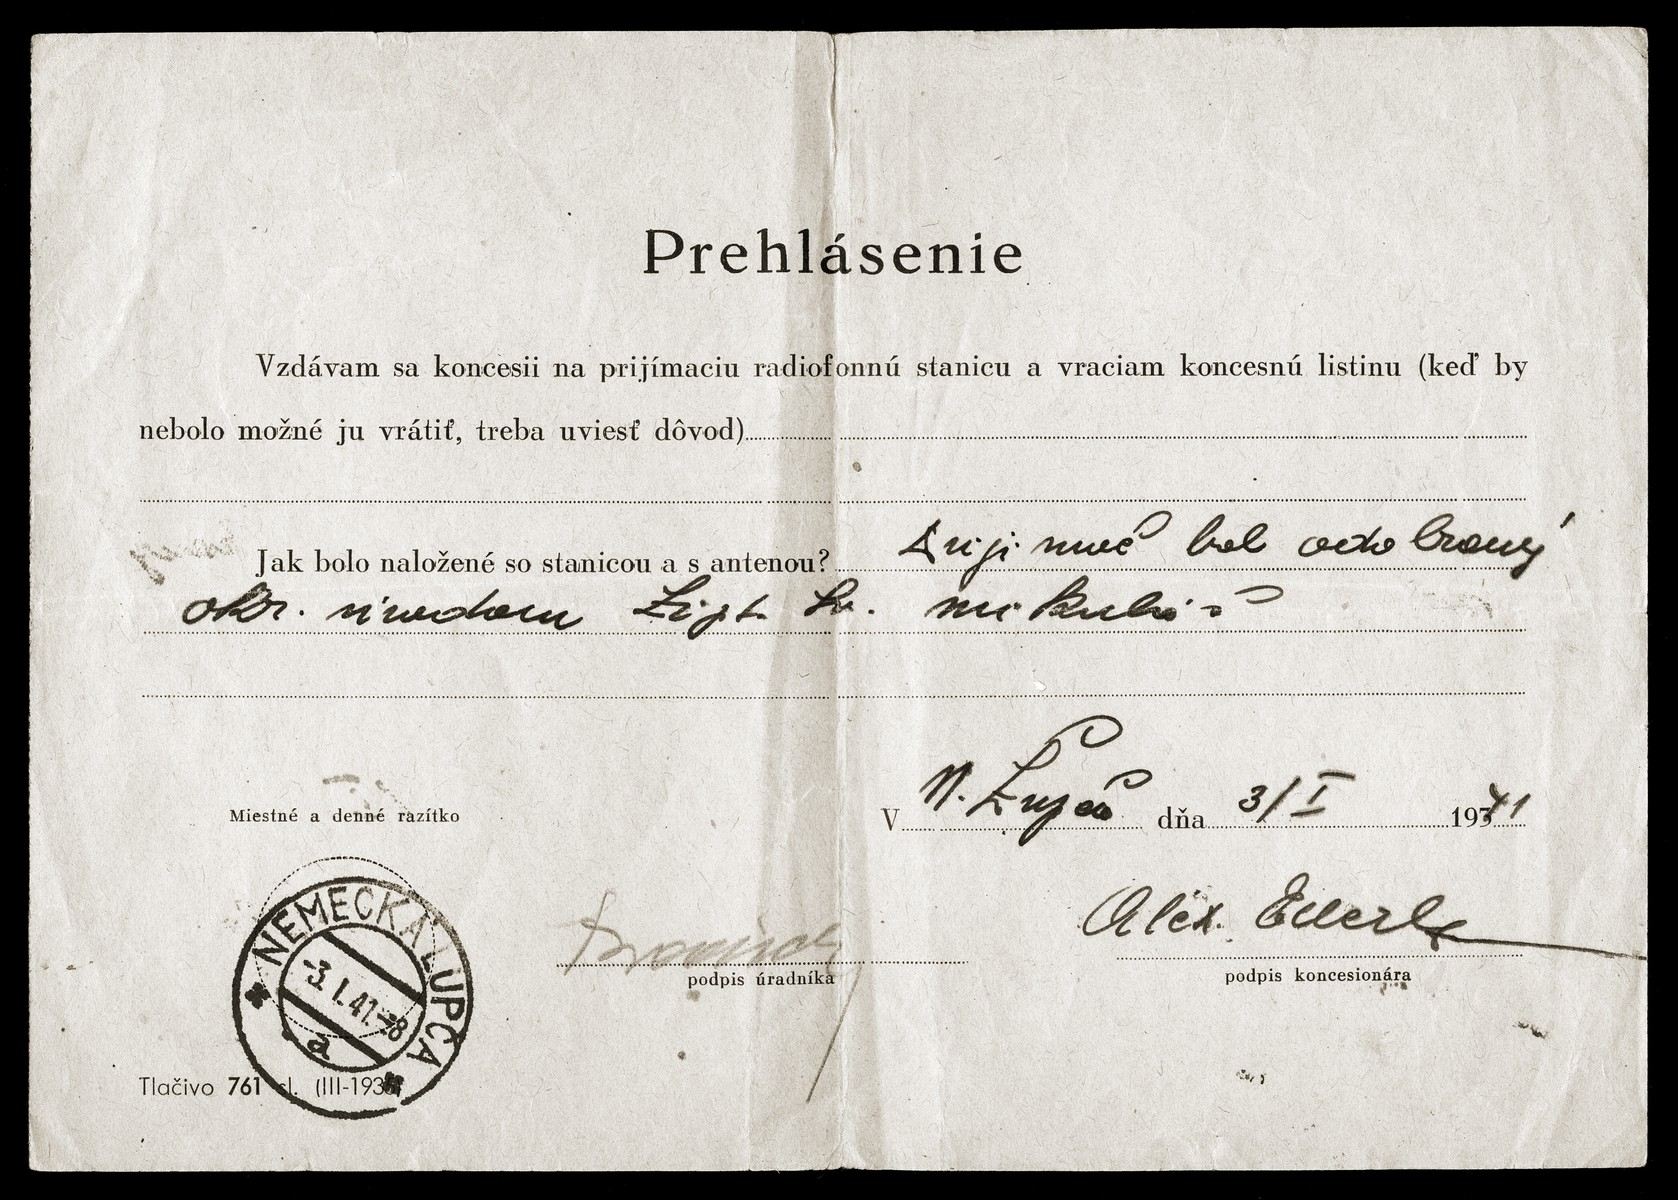 A document ordering Alexander Elbert to voluntarily relinquish his license to own a radio.